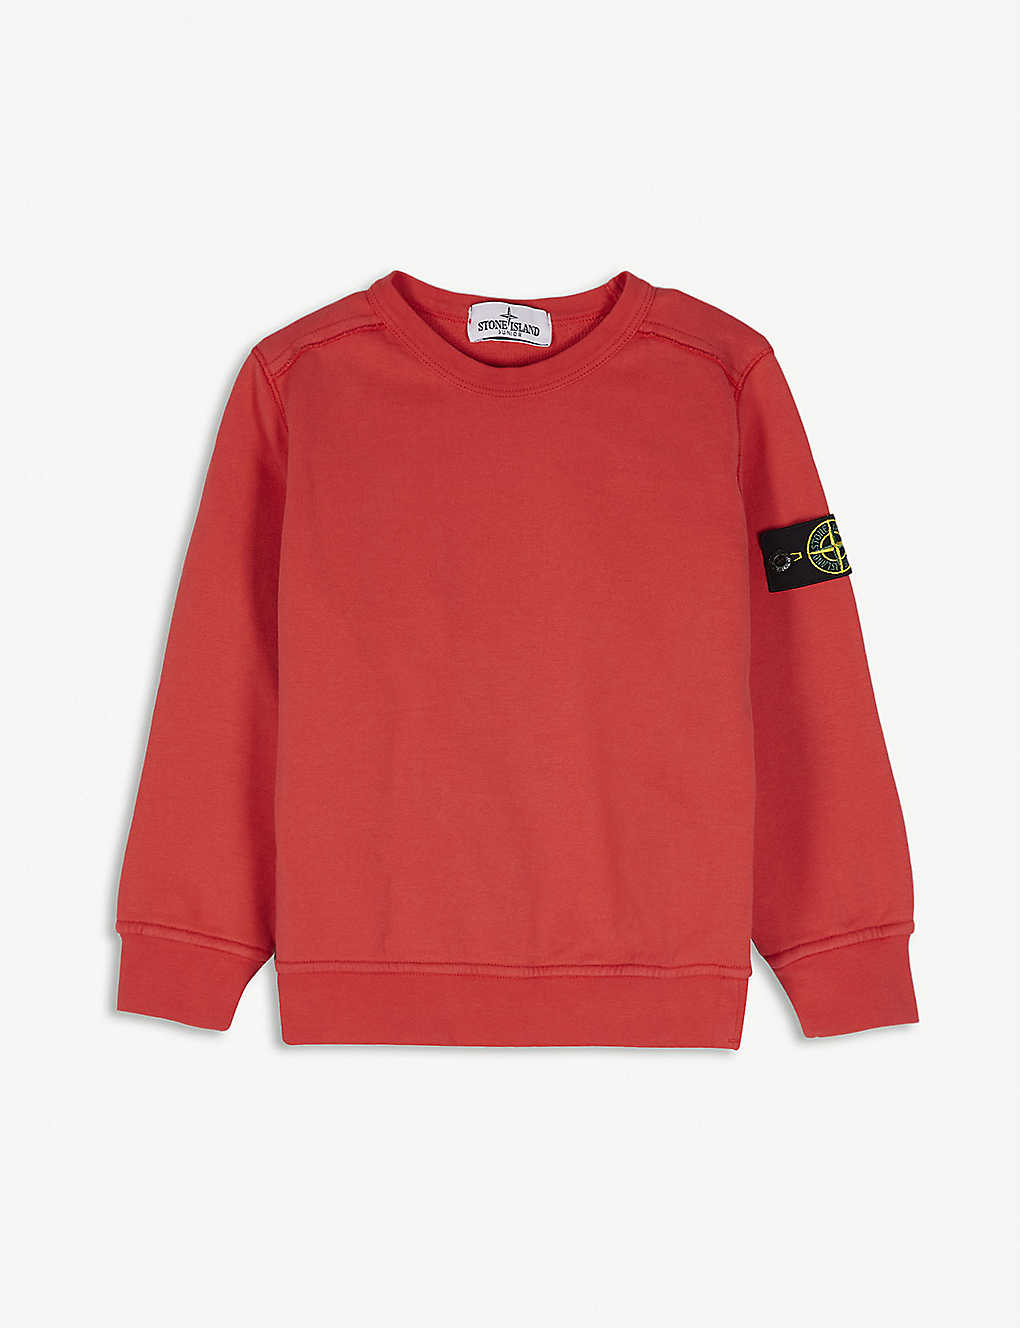 STONE ISLAND: Compass logo patch cotton sweatshirt 4-14 years